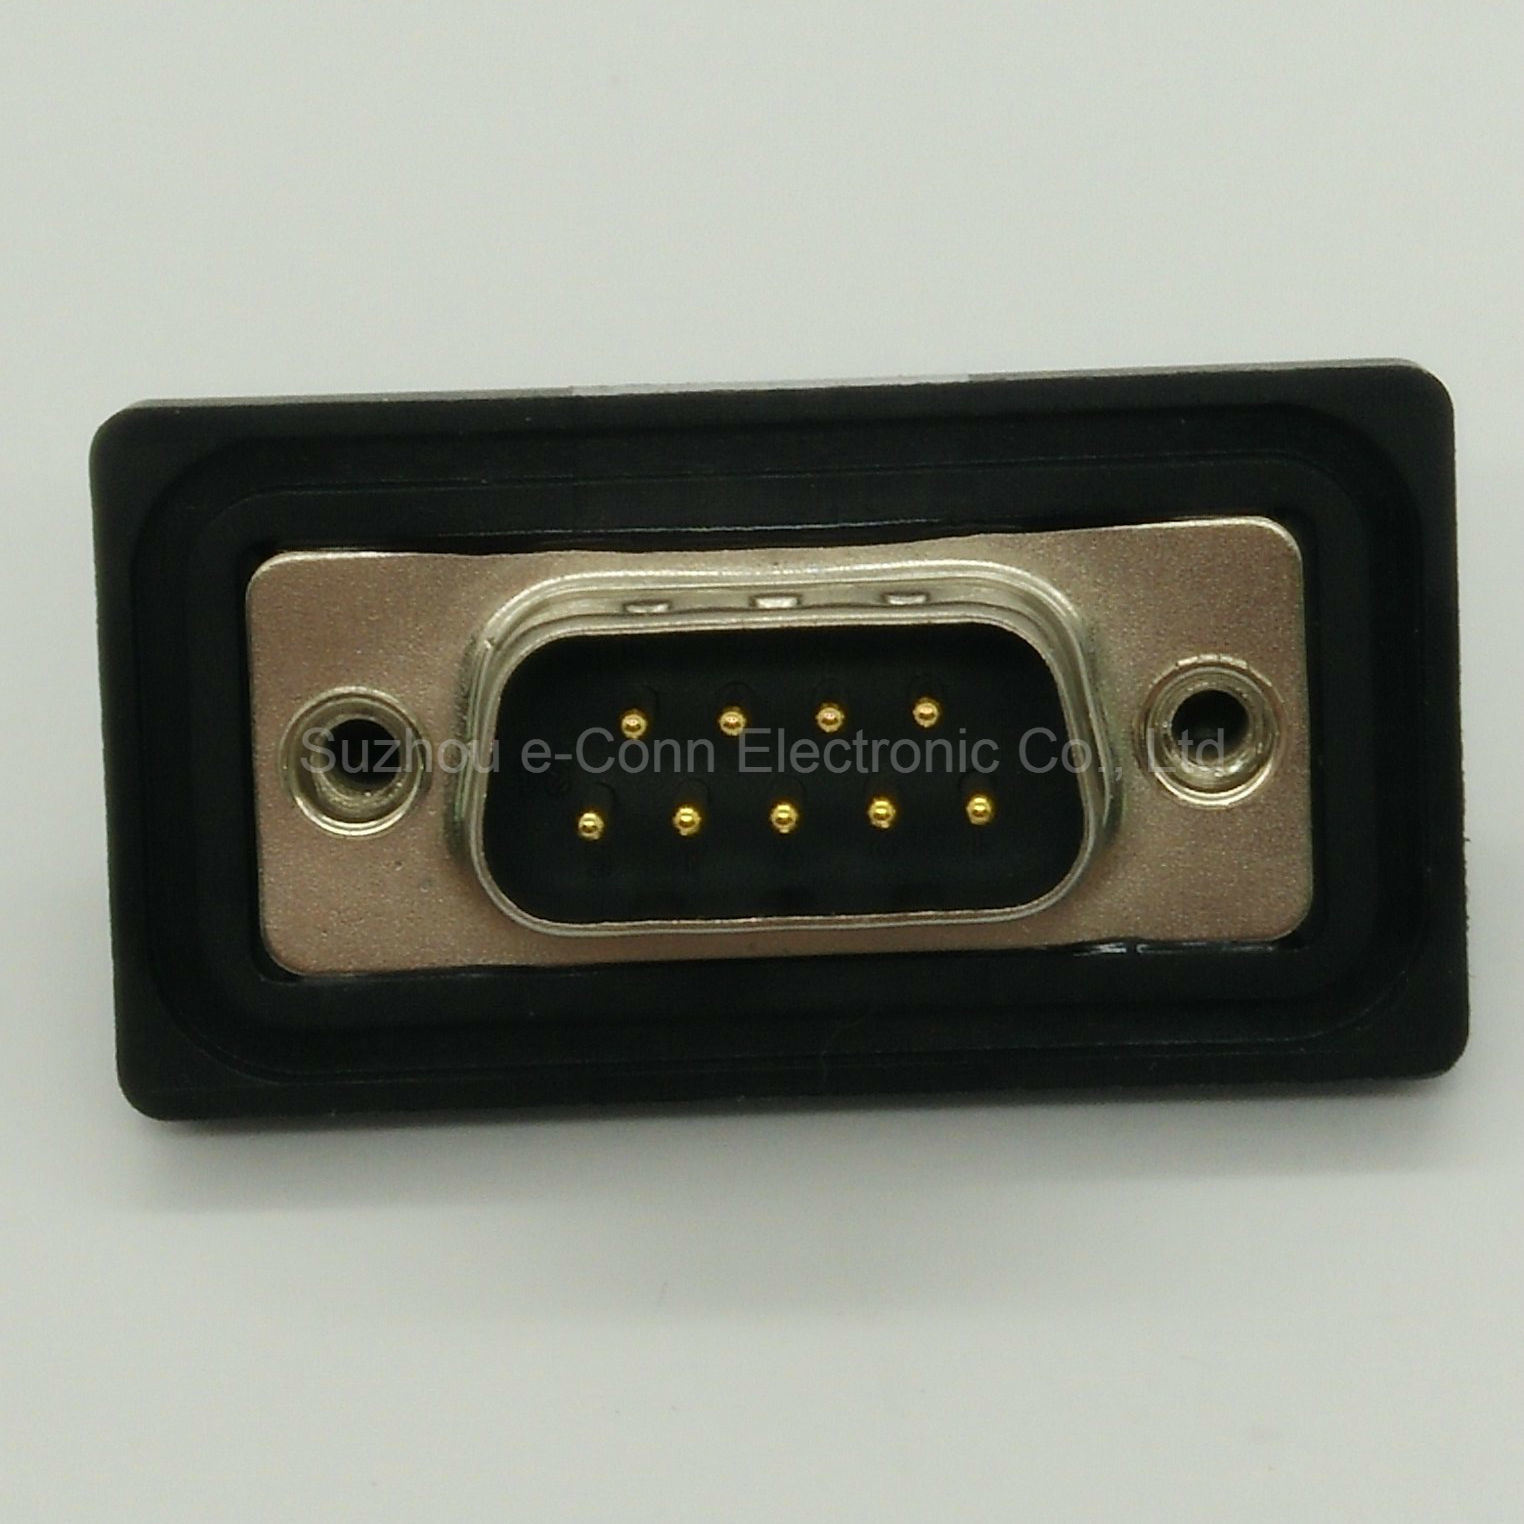 IP67 IP68 Waterproof D-SUB Connector